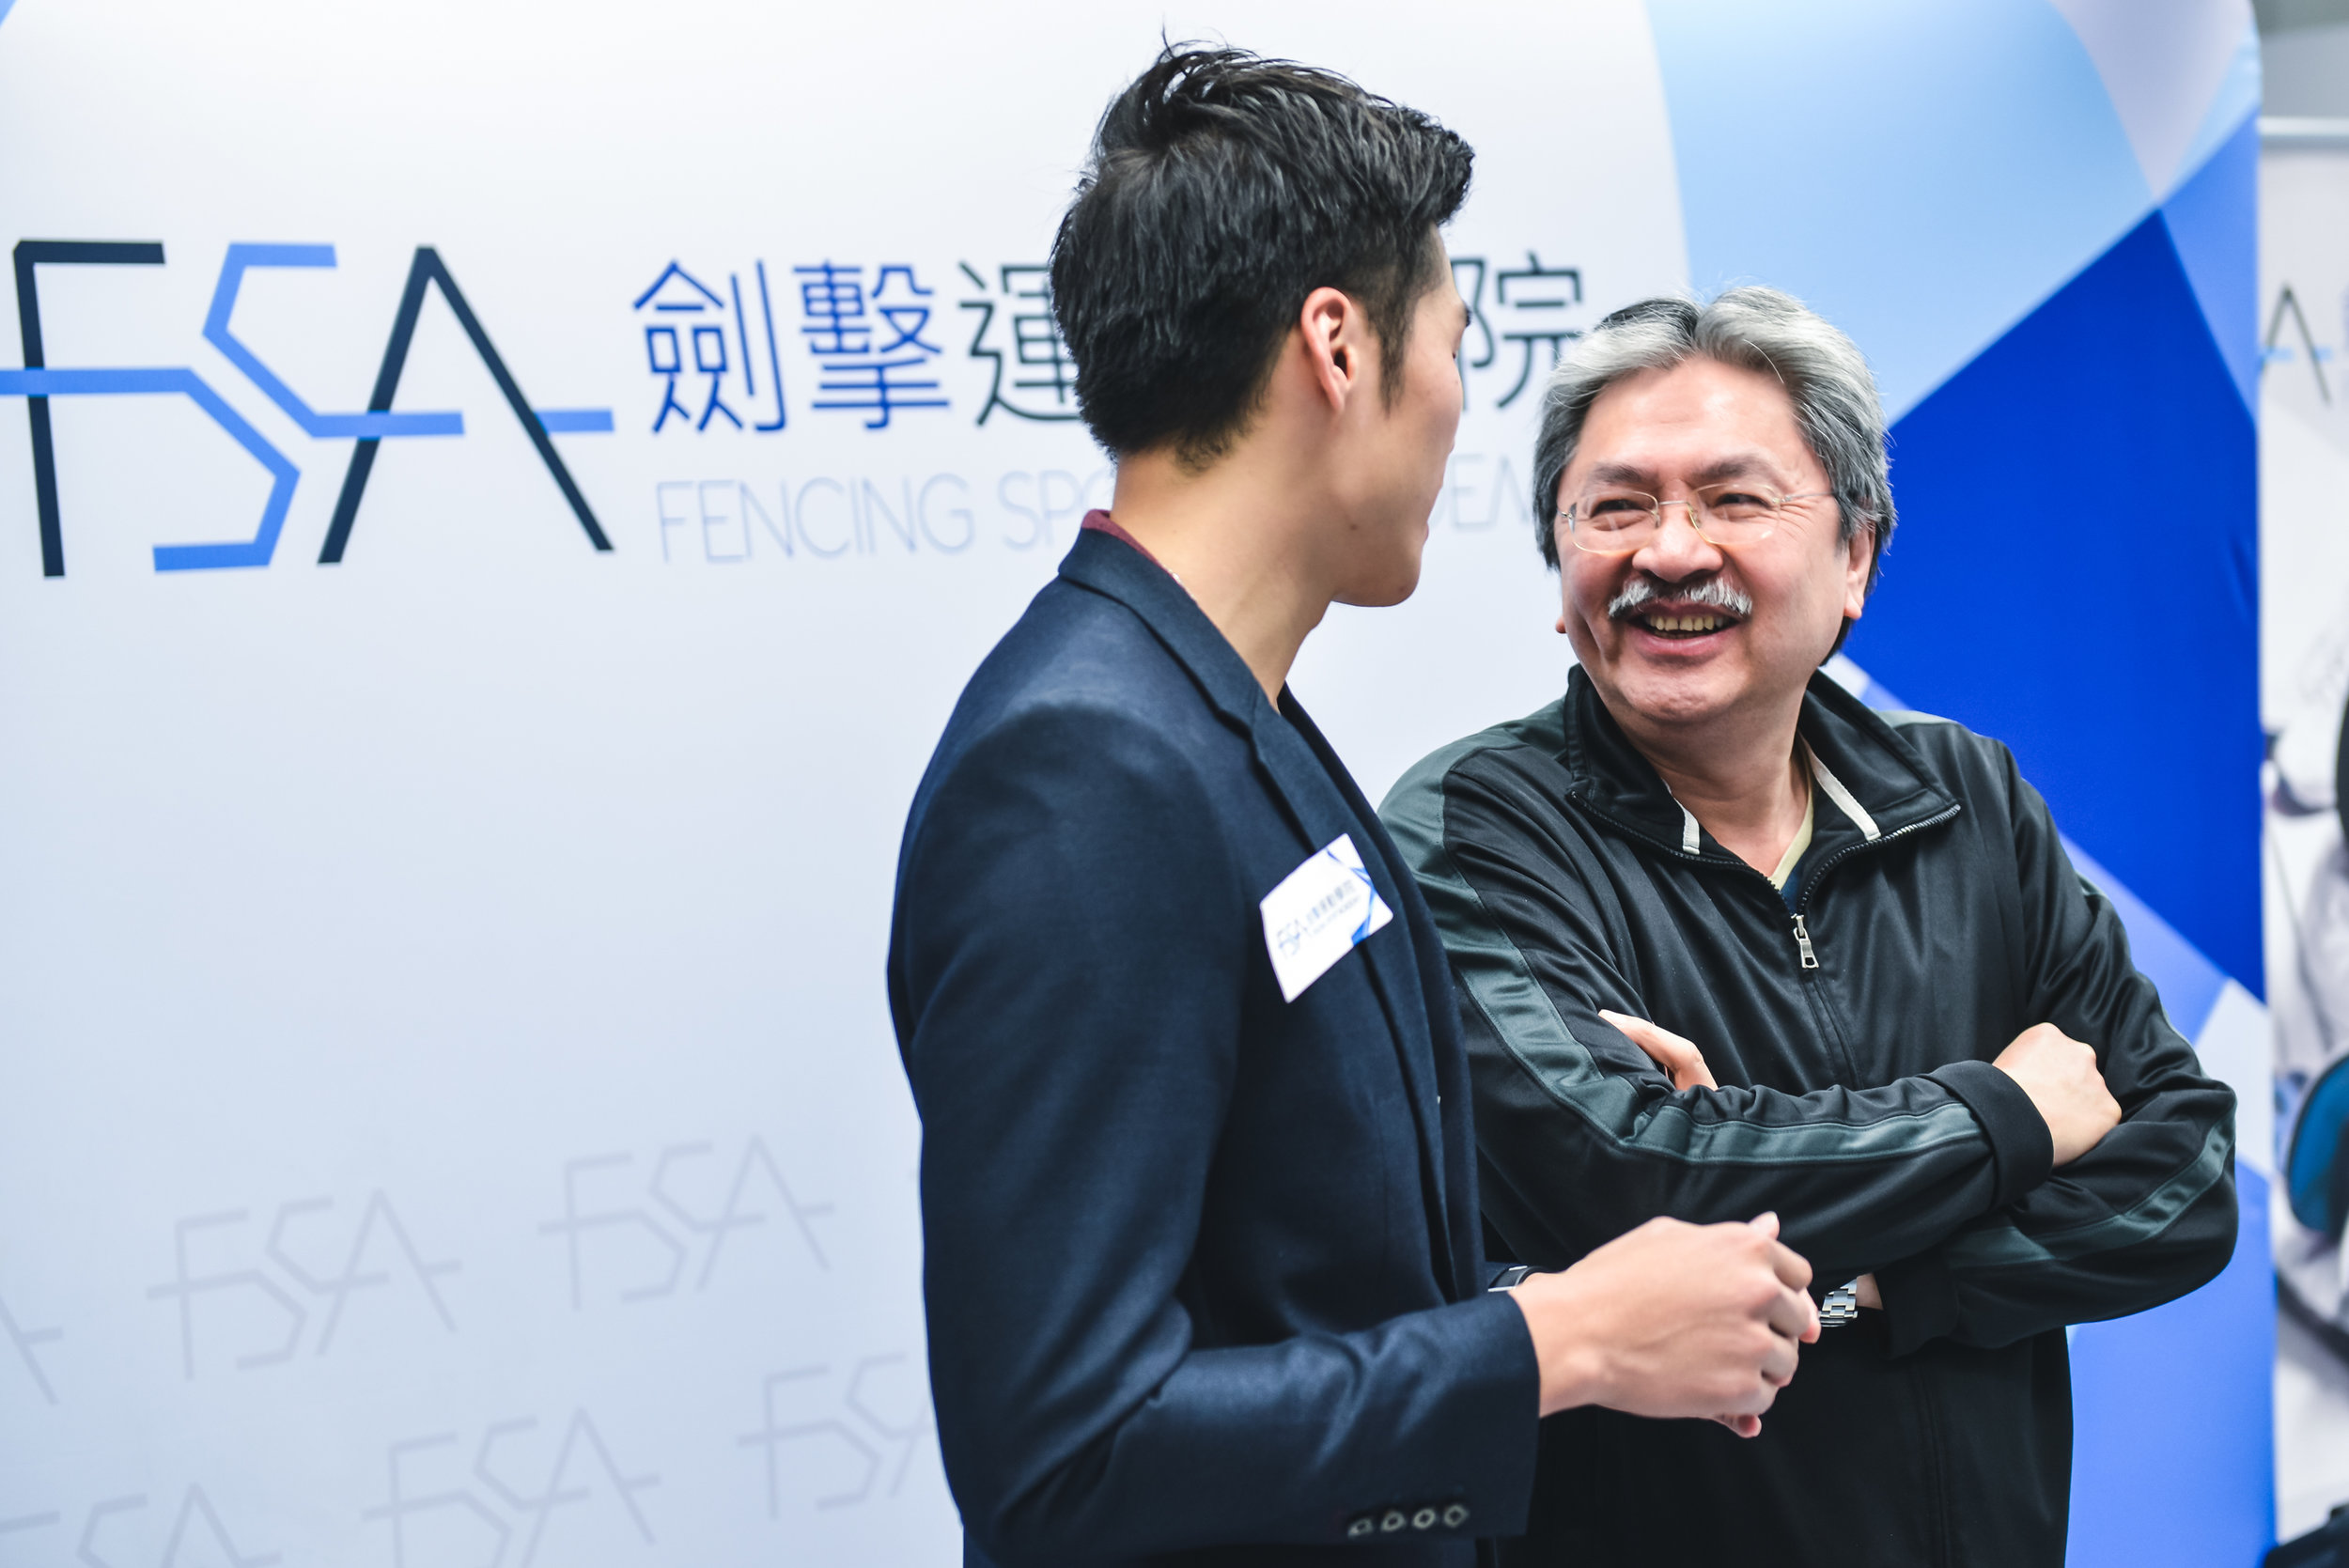 John Tsang (曾俊華)  at the Fencing Sport Academy Opening on 2013 Dec